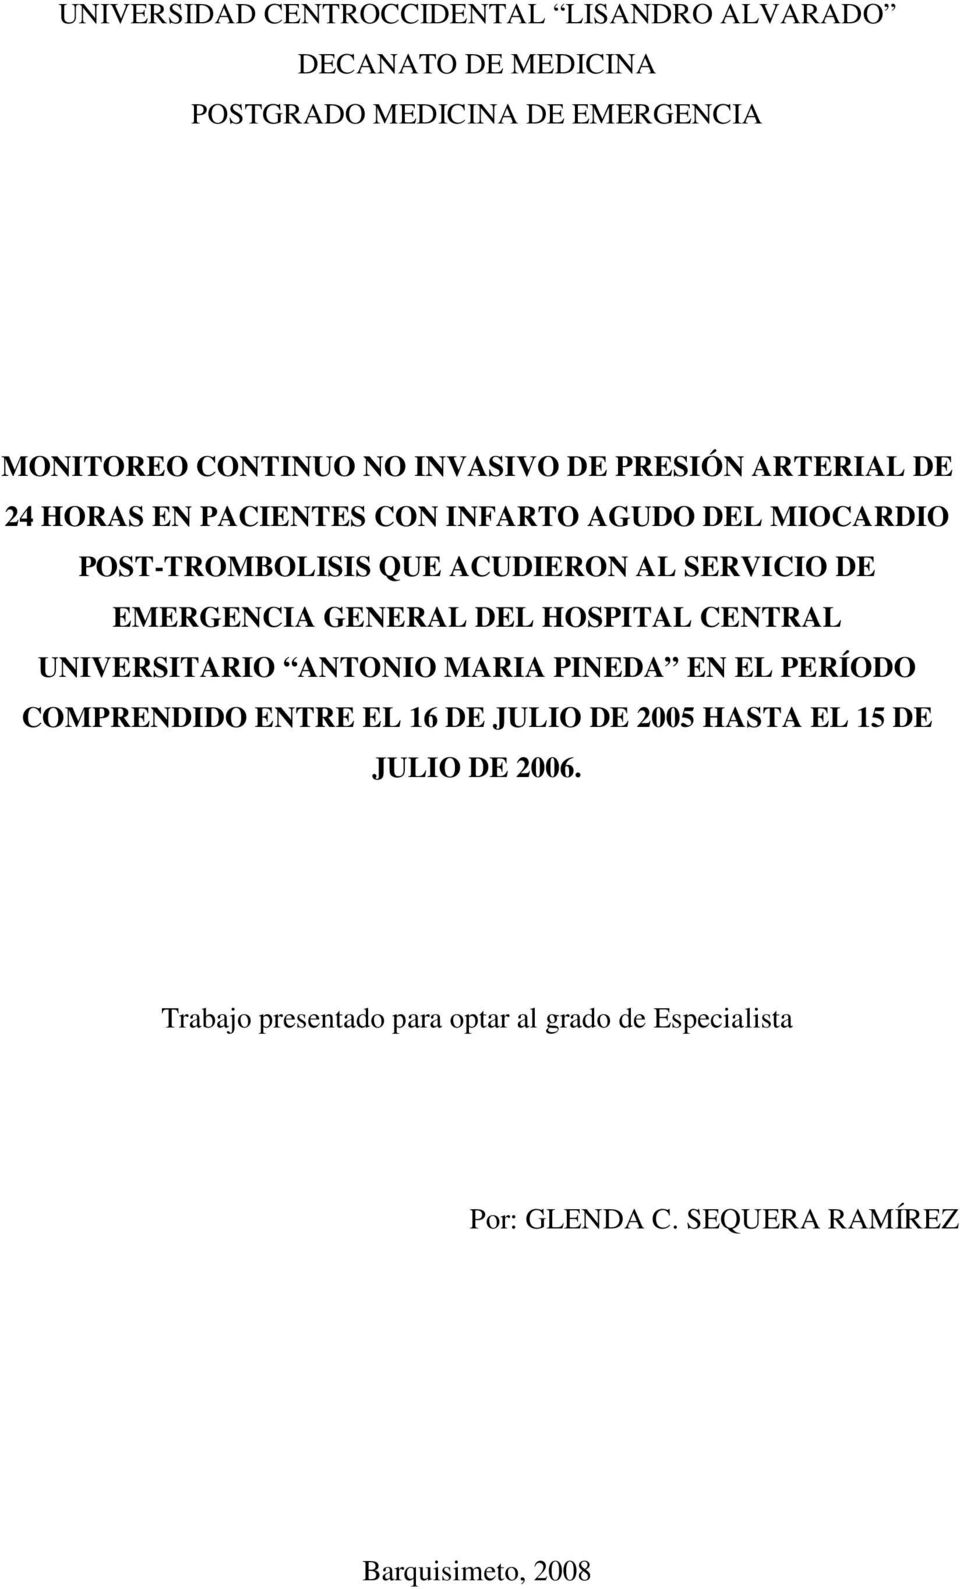 DE EMERGENCIA GENERAL DEL HOSPITAL CENTRAL UNIVERSITARIO ANTONIO MARIA PINEDA EN EL PERÍODO COMPRENDIDO ENTRE EL 16 DE JULIO DE